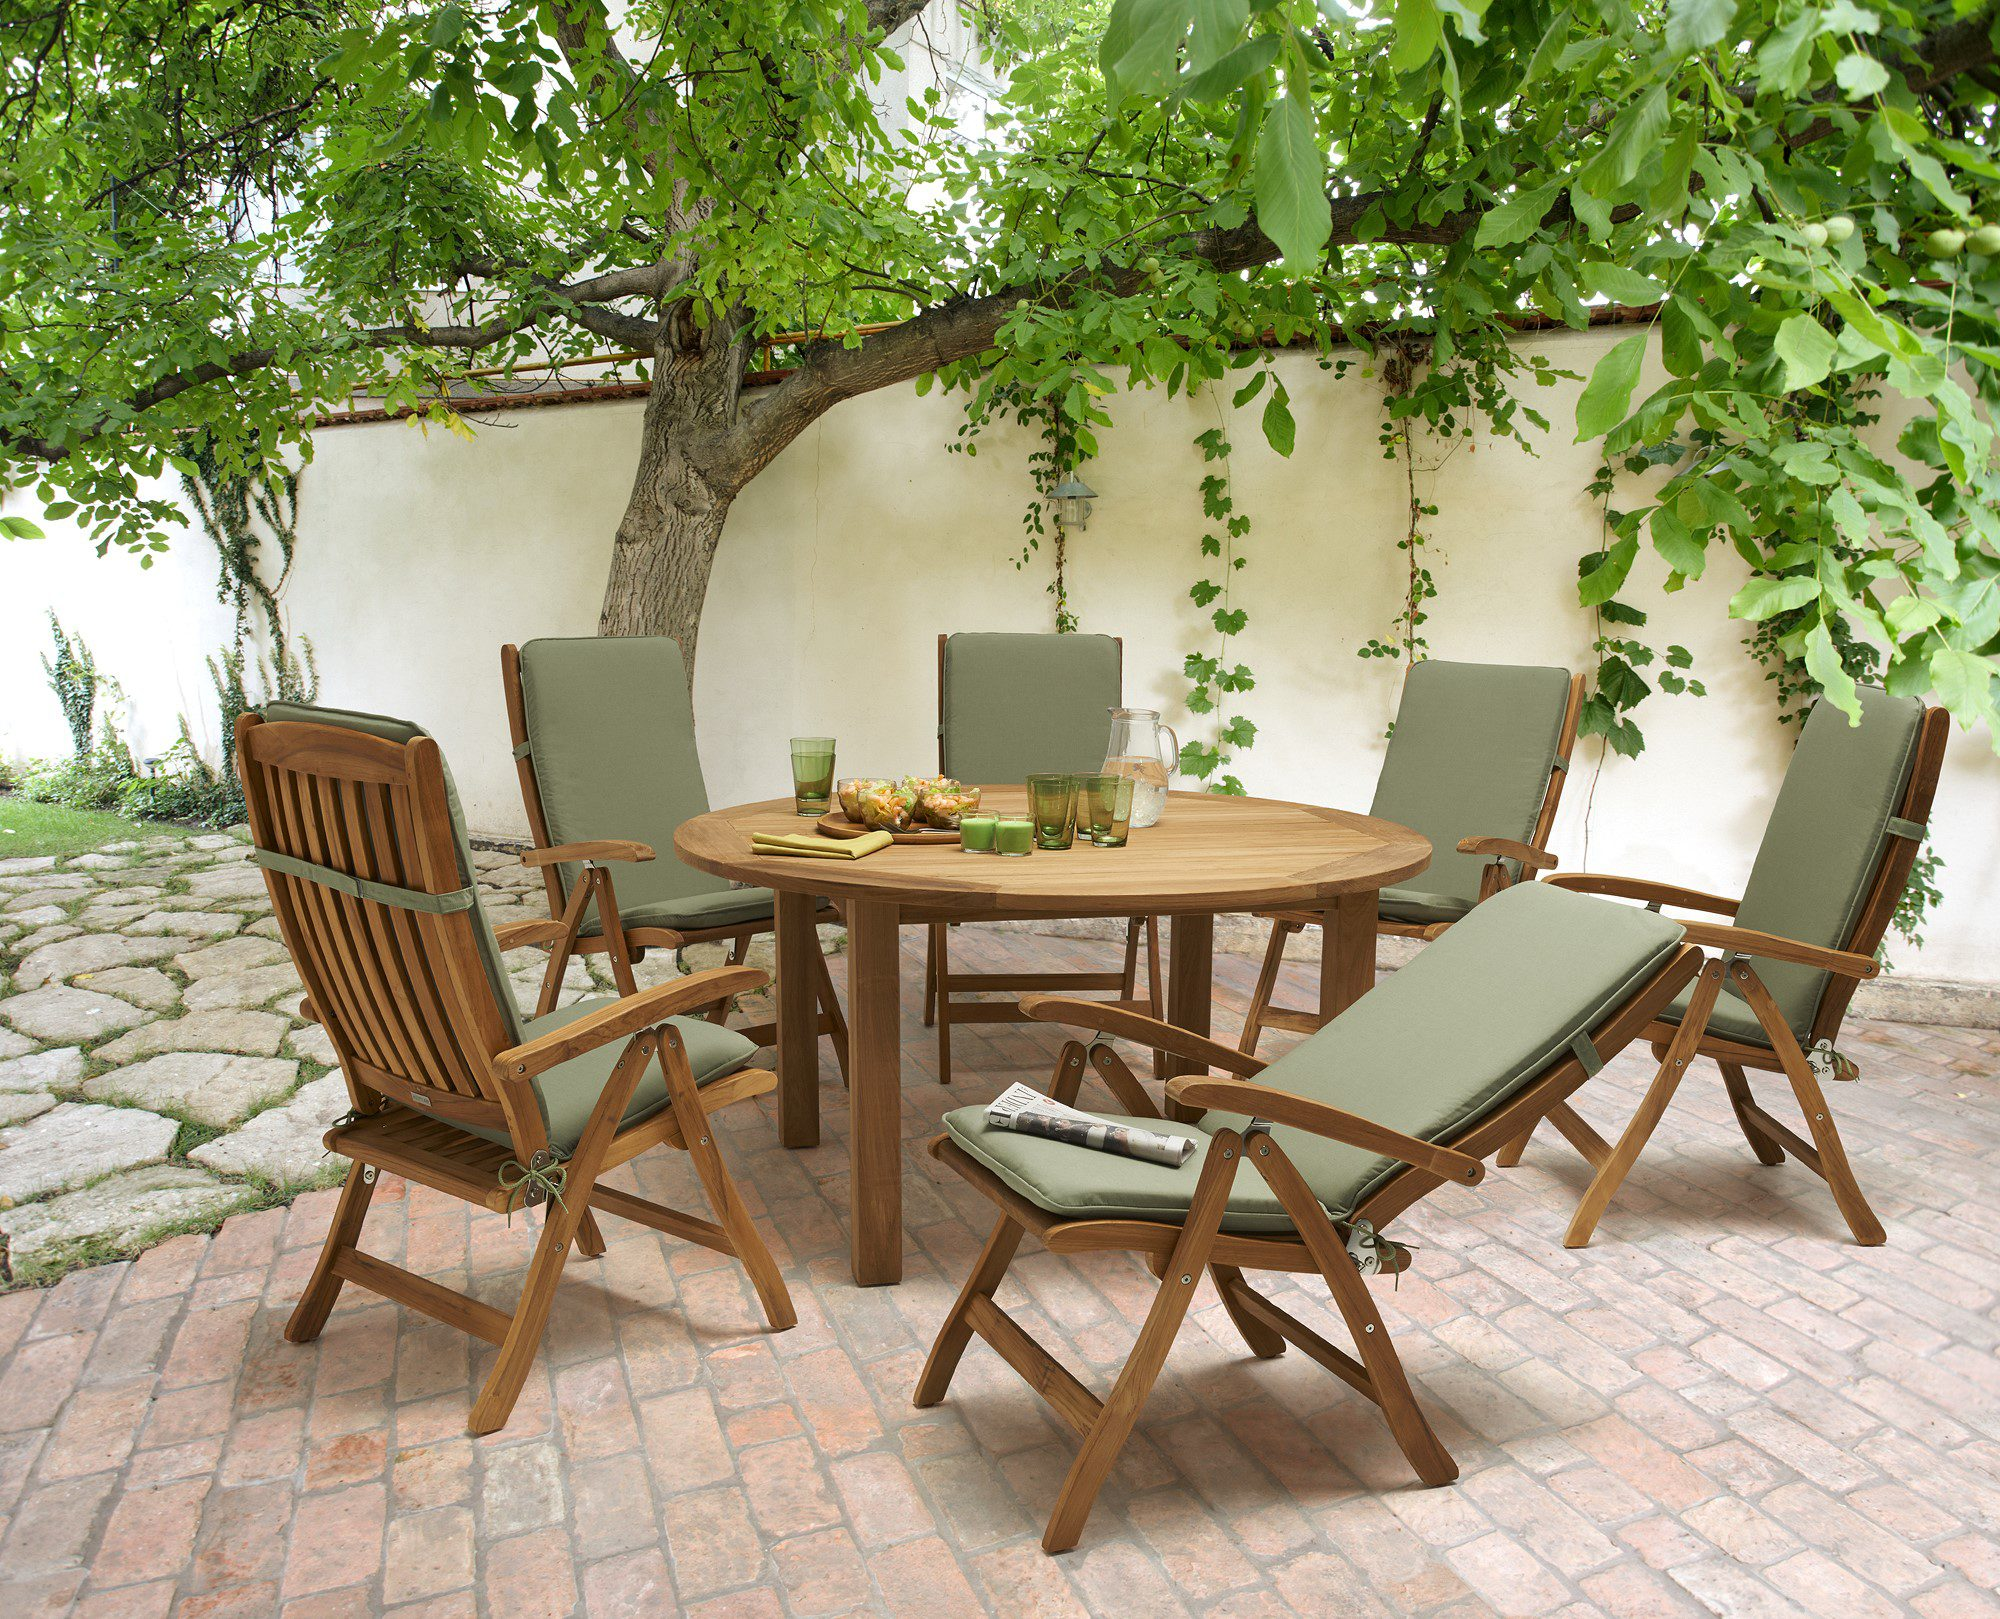 Garden furniture norwich camping for Outdoor furniture vancouver